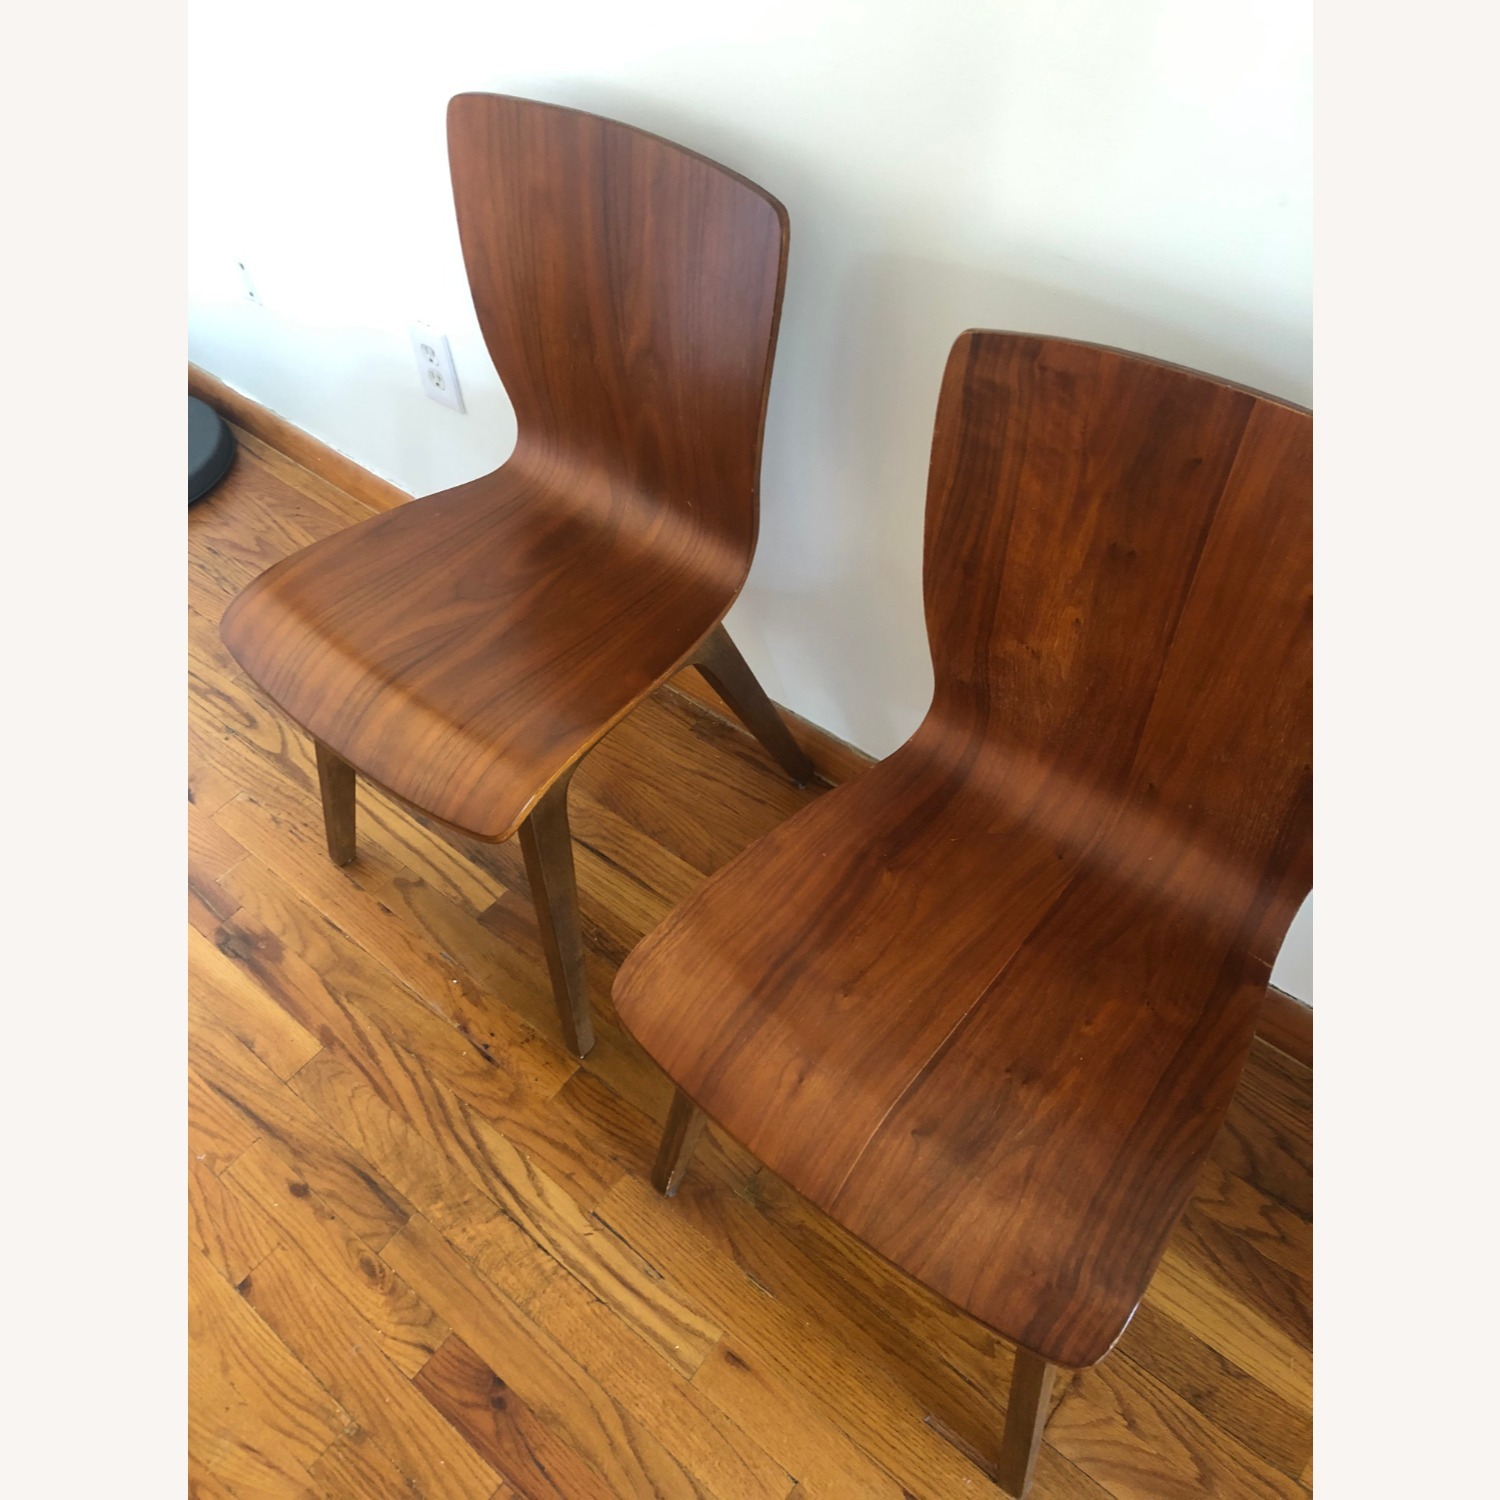 West Elm Crest Bentwood Dining Chair (Set of 2) - image-3